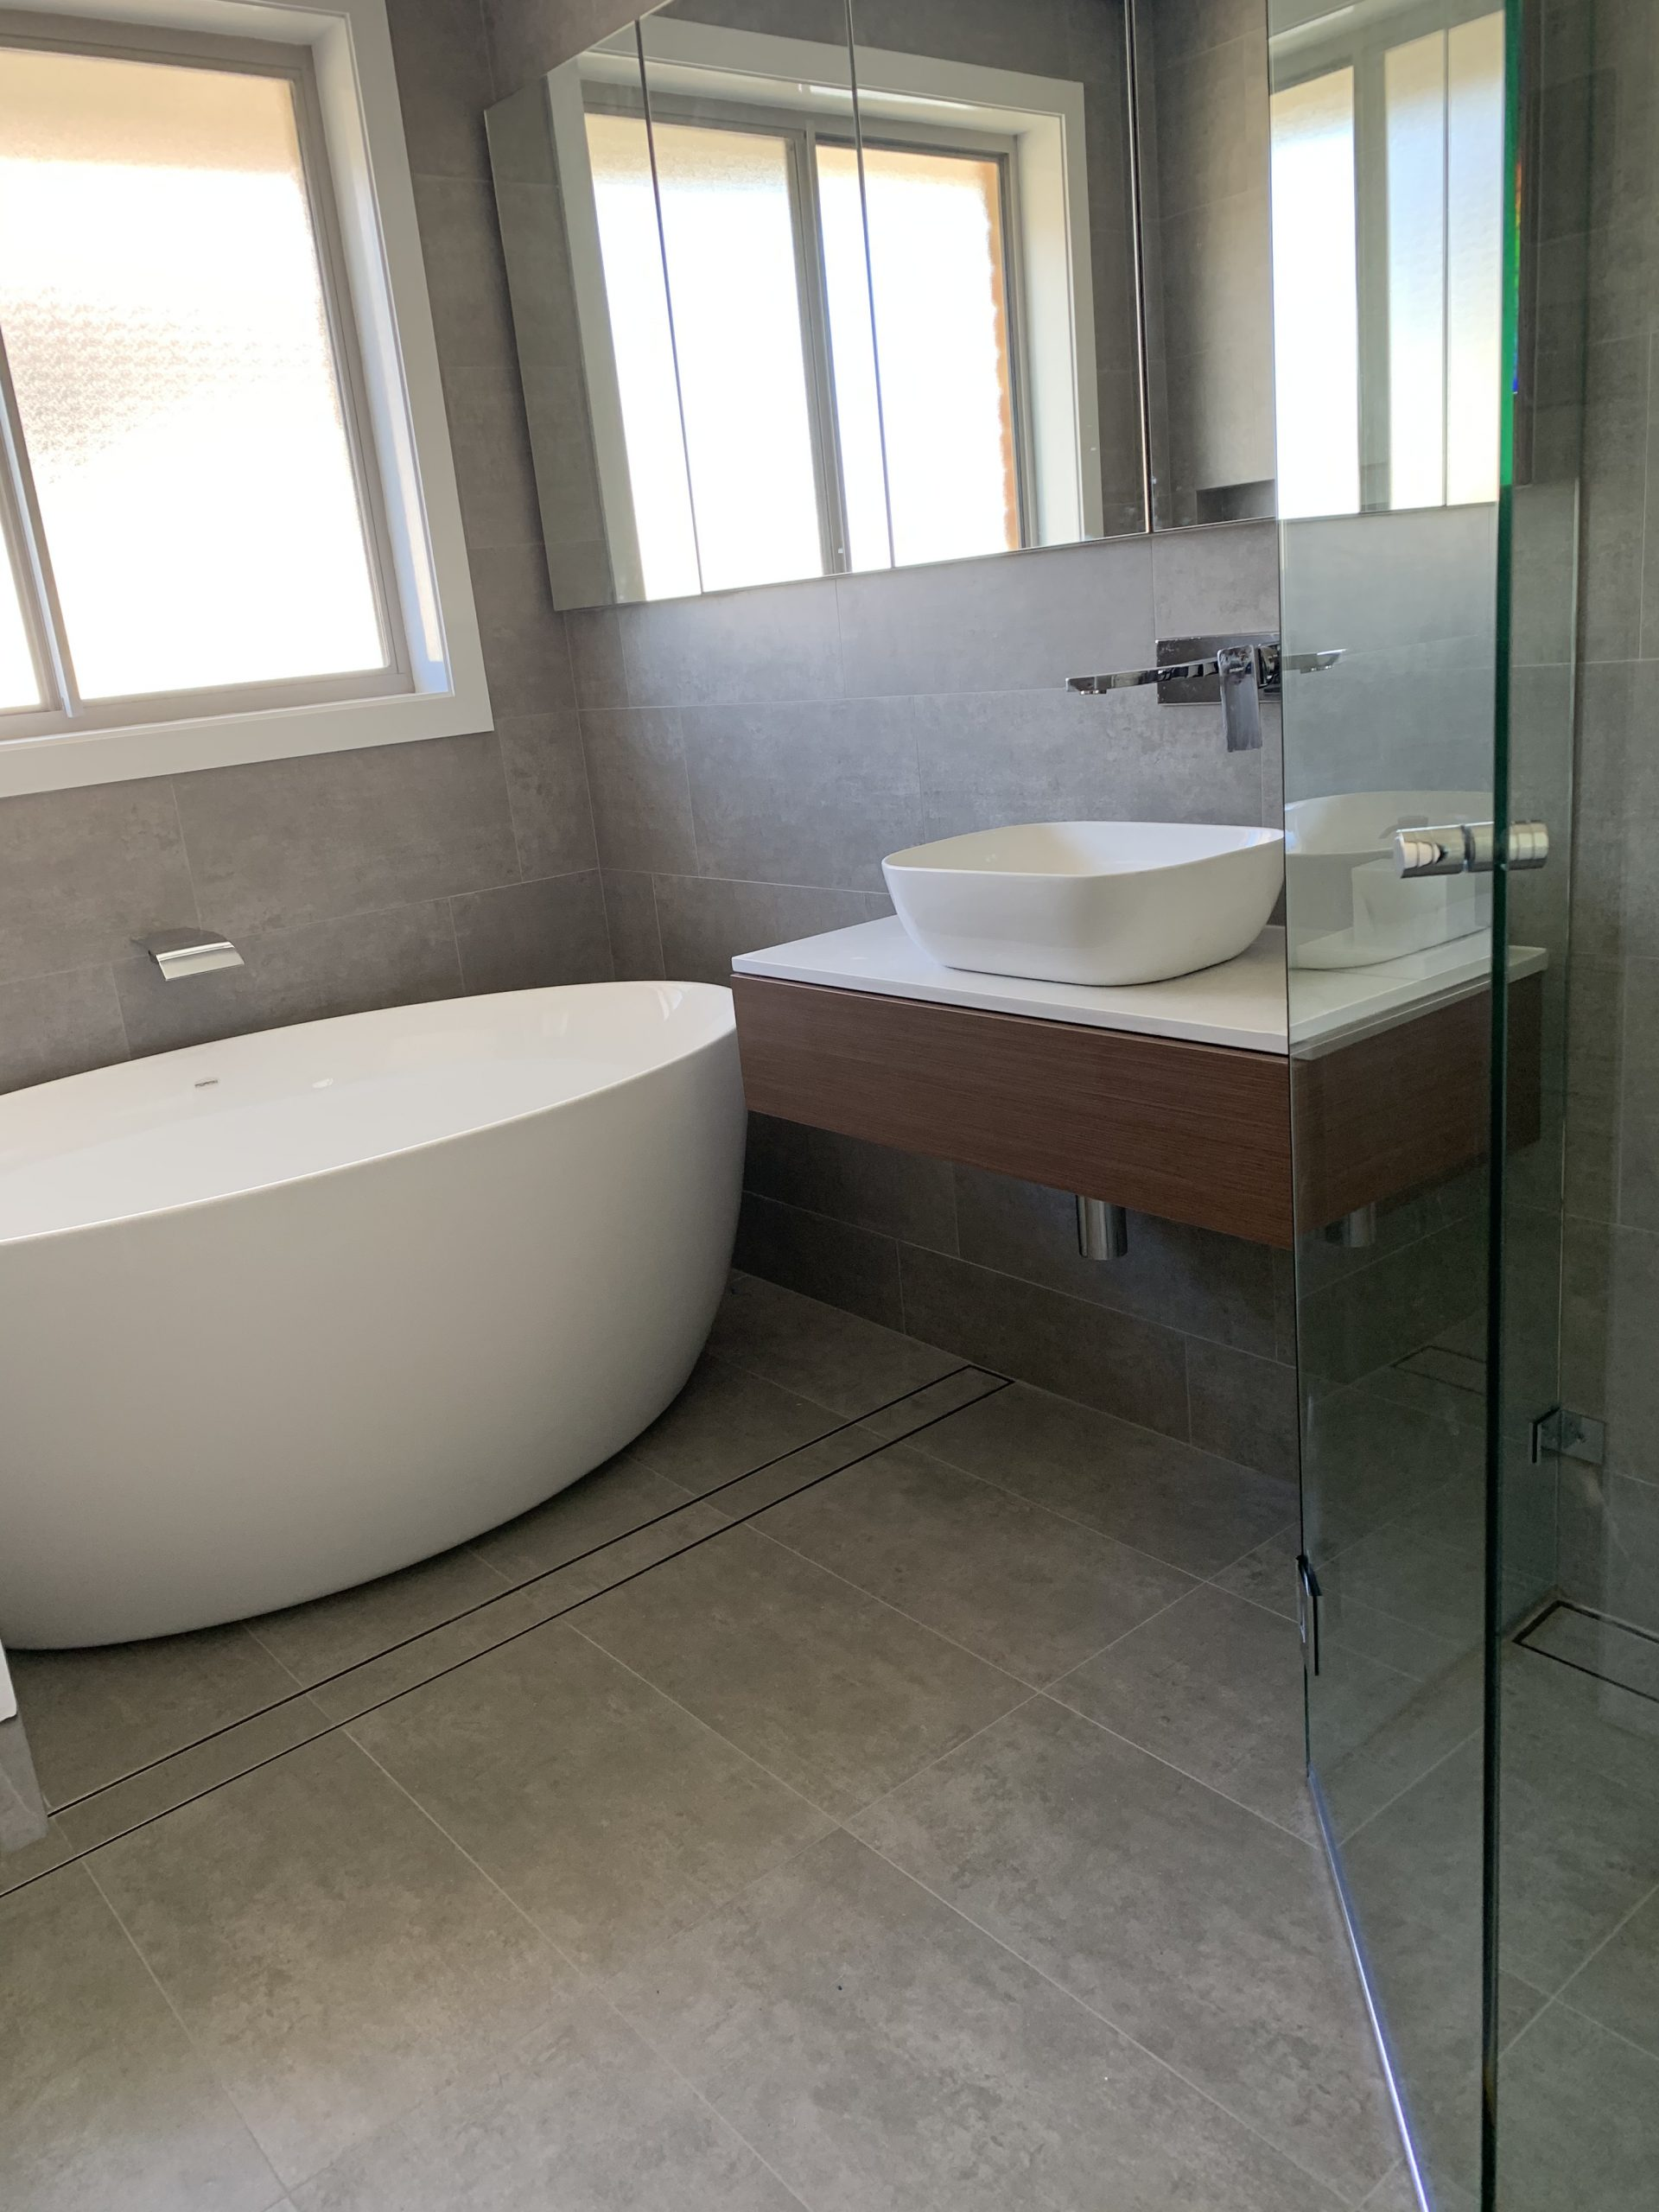 Bathroom in Belrose with In Slab Heating and inscreed heating